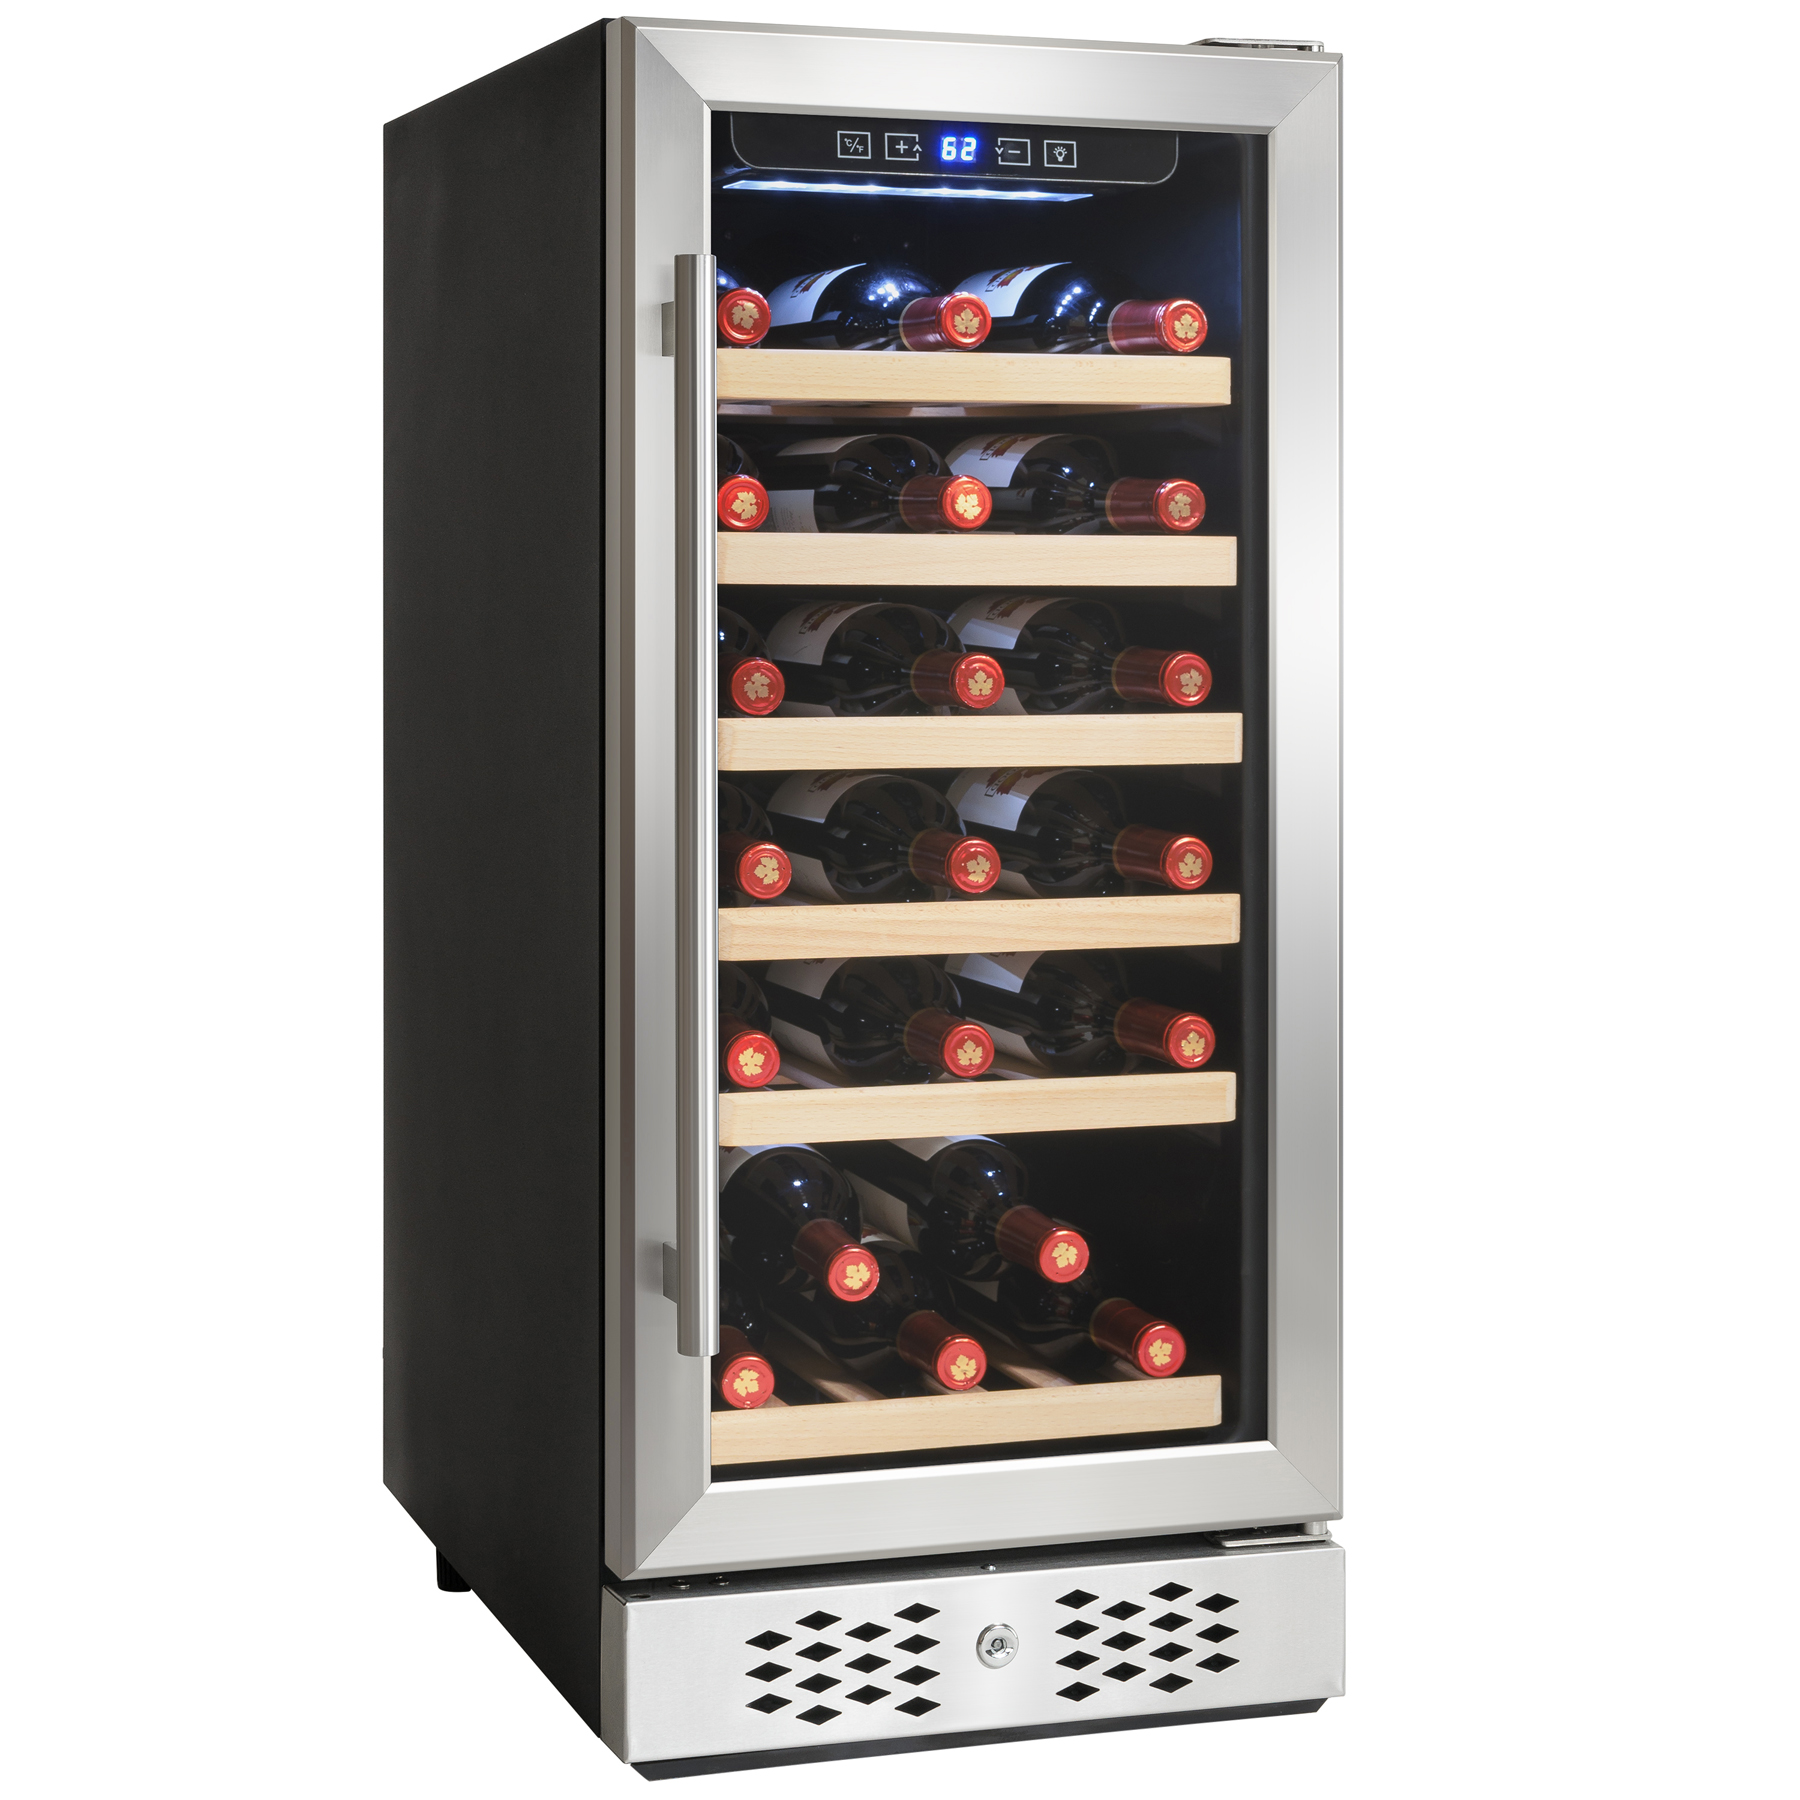 Image of AKDY 30 Bottles Single Zone Compressor Freestanding Wine Cooler Refrigerator Chiller